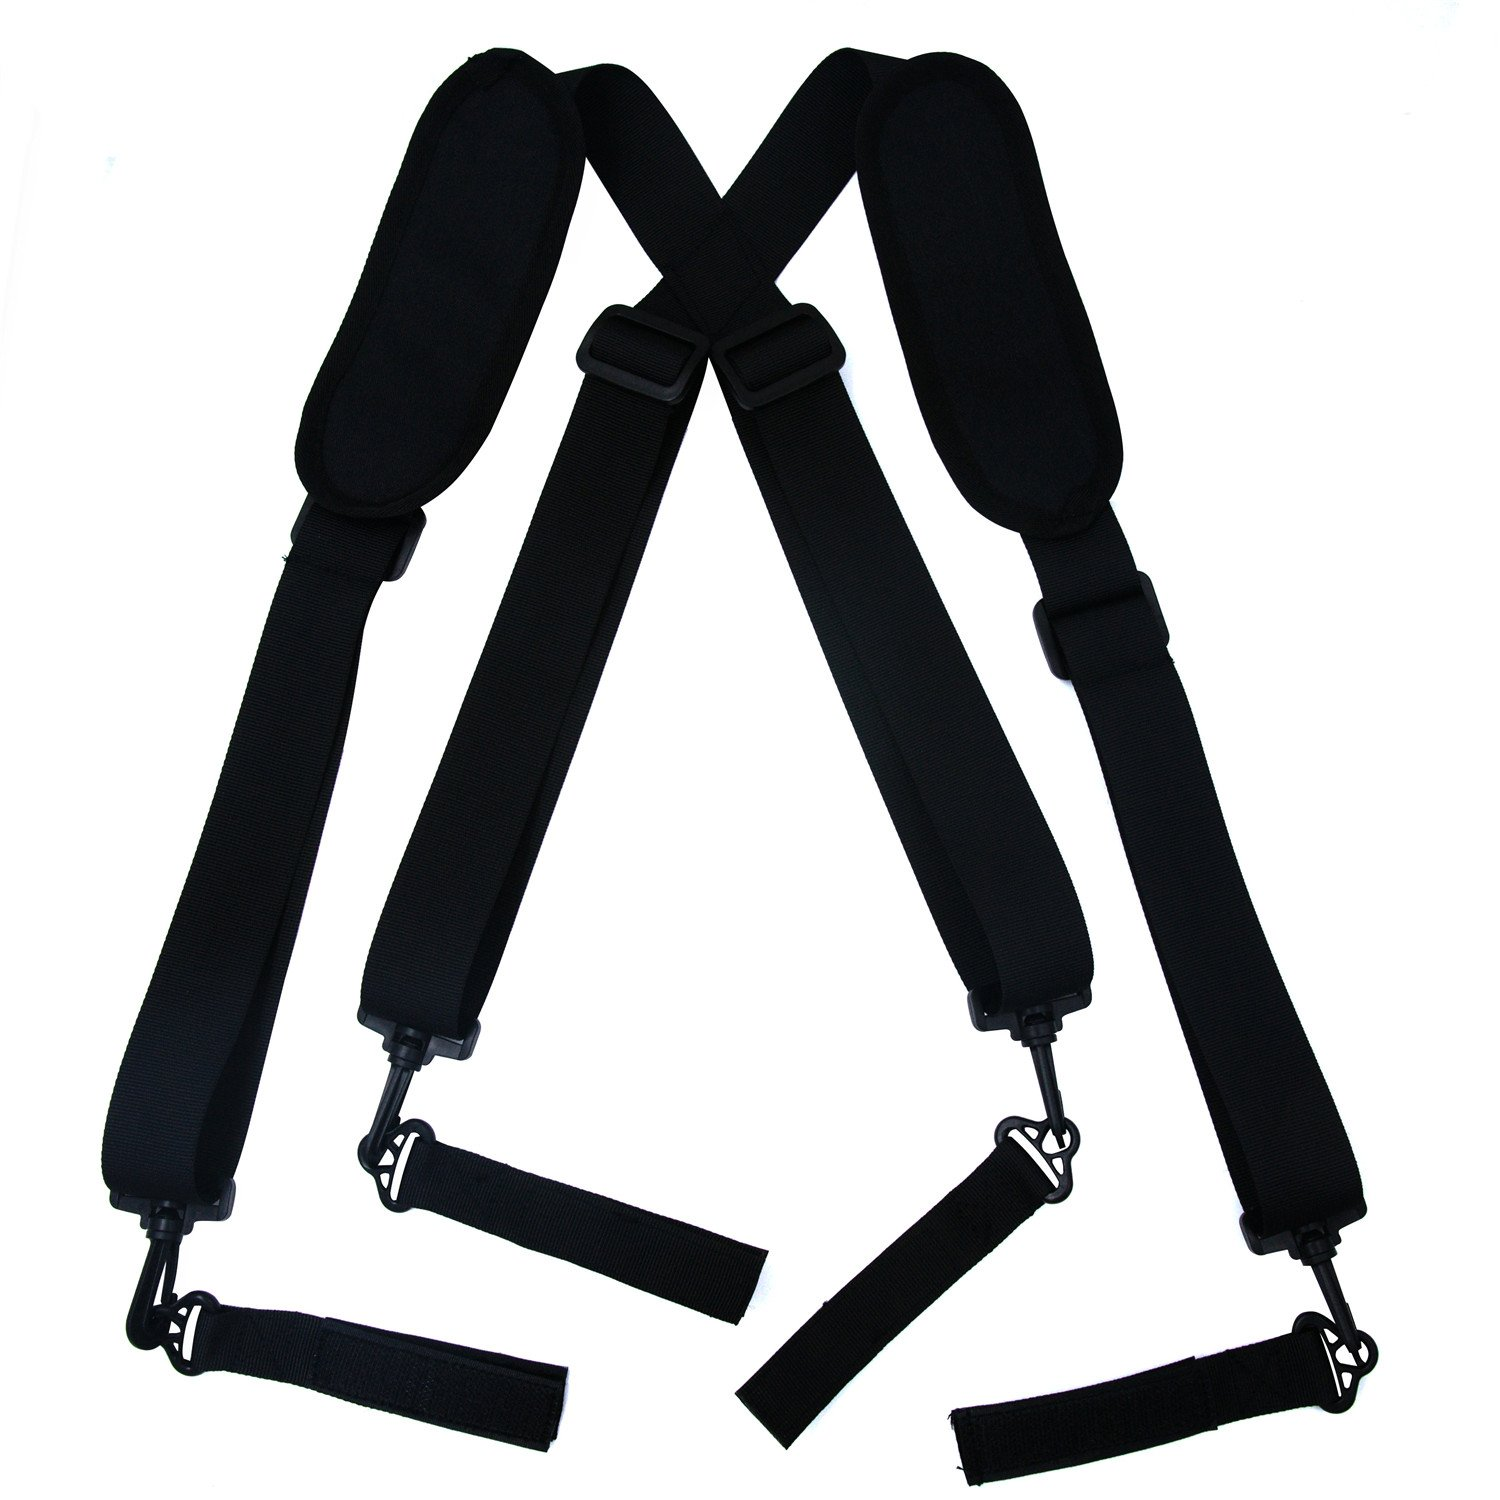 Loosco Duty And Durable Adjustable Tool Belt Suspenders With Pro Comfort Padding Partnered For Duty Belt by Loosco